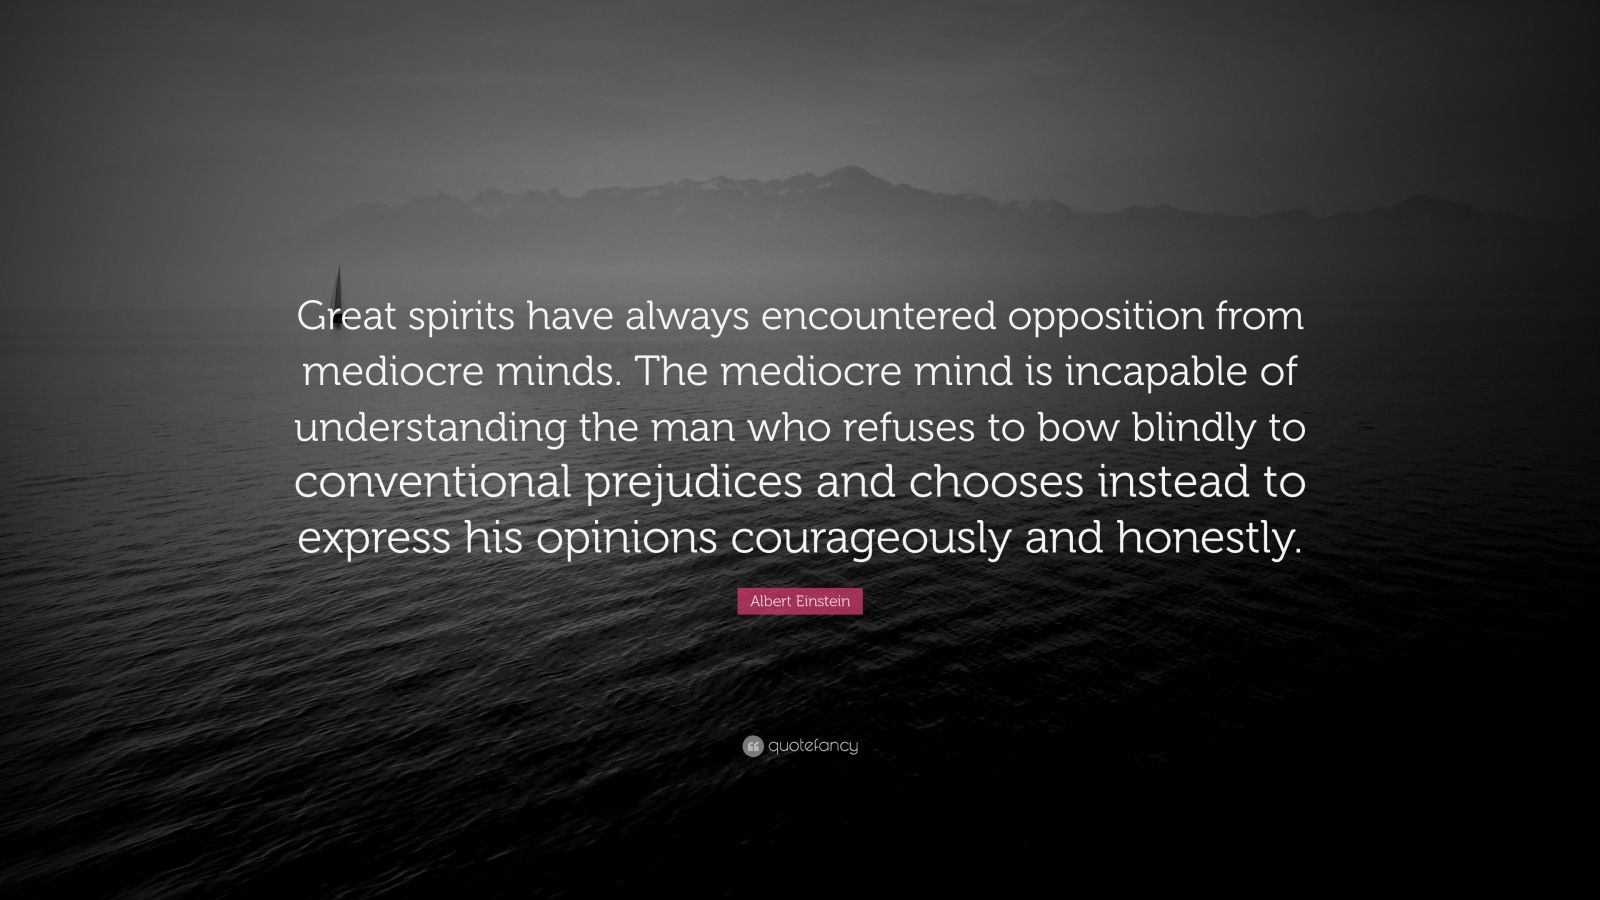 "Albert Einstein Quote: ""Great spirits have always encountered opposition from mediocre minds. The mediocre mind is incapable of understanding the man who refuses to bow blindly to conventional prejudices and chooses instead to express his opinions courageously and honestly."""